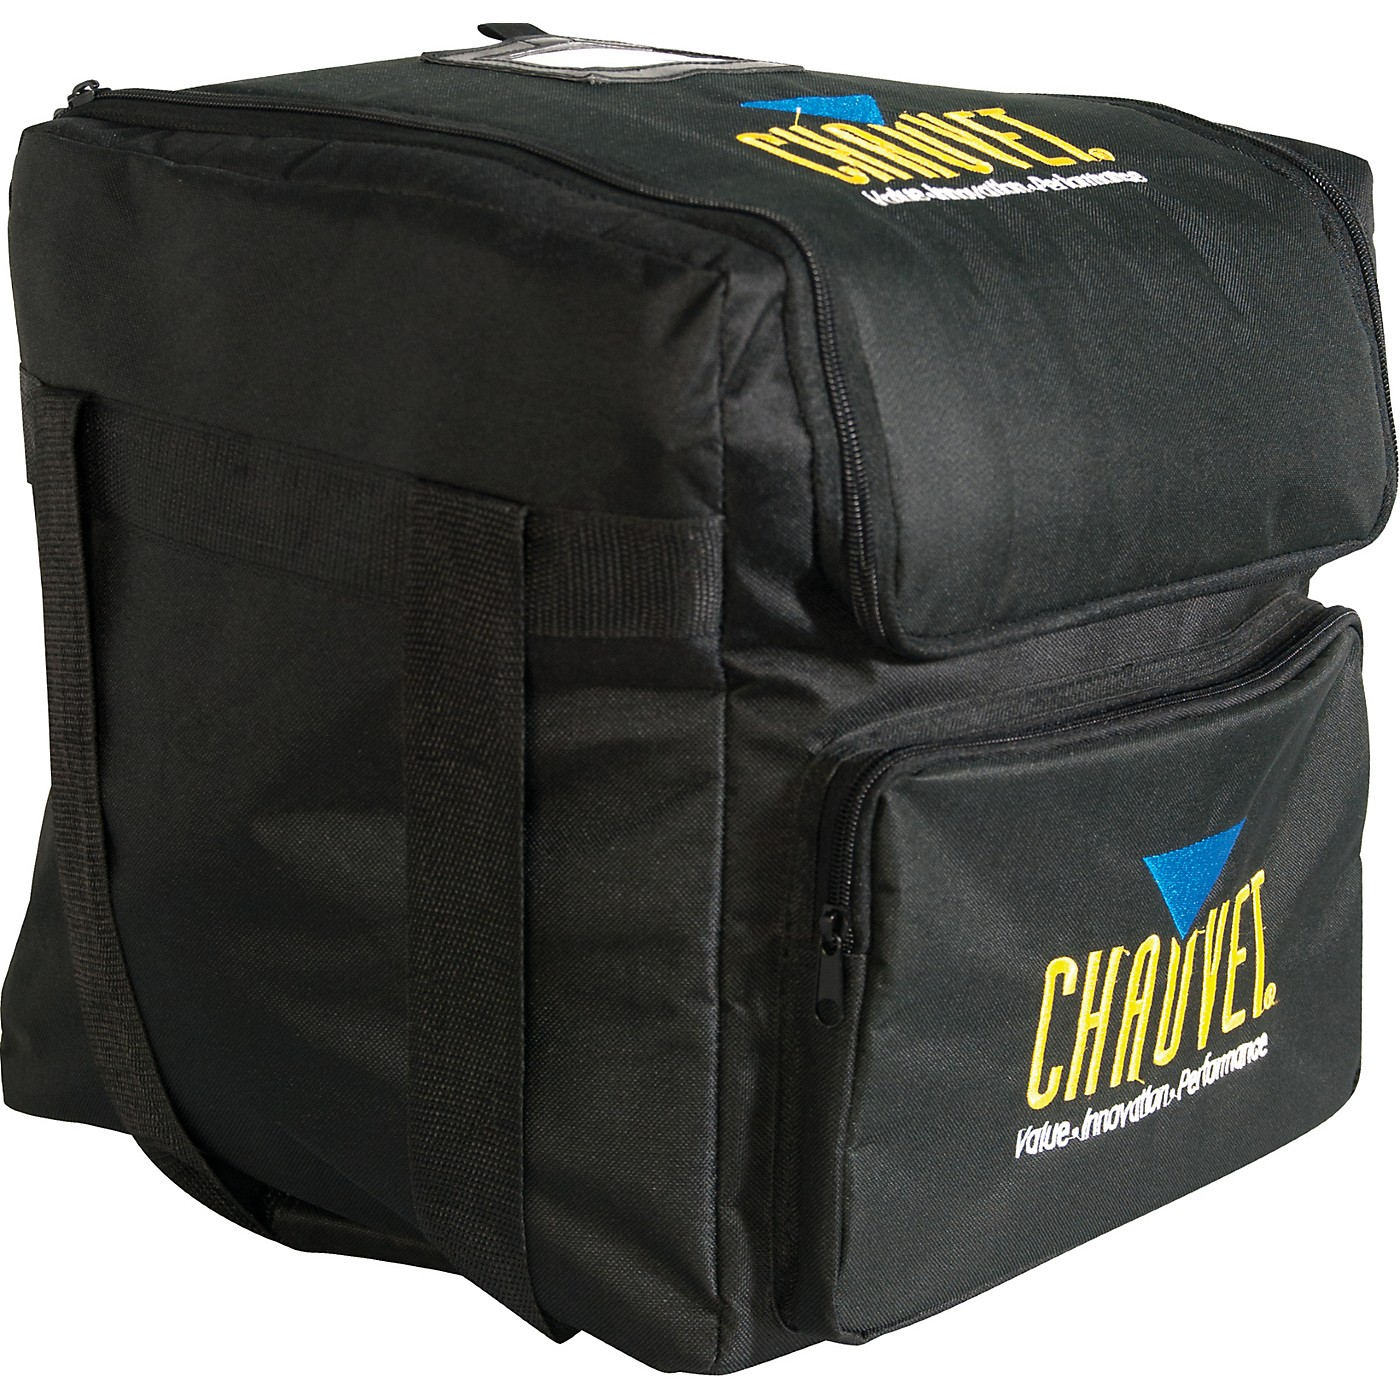 CHAUVET DJ CHS-40 Effect Light VIP Travel/Gear Bag thumbnail